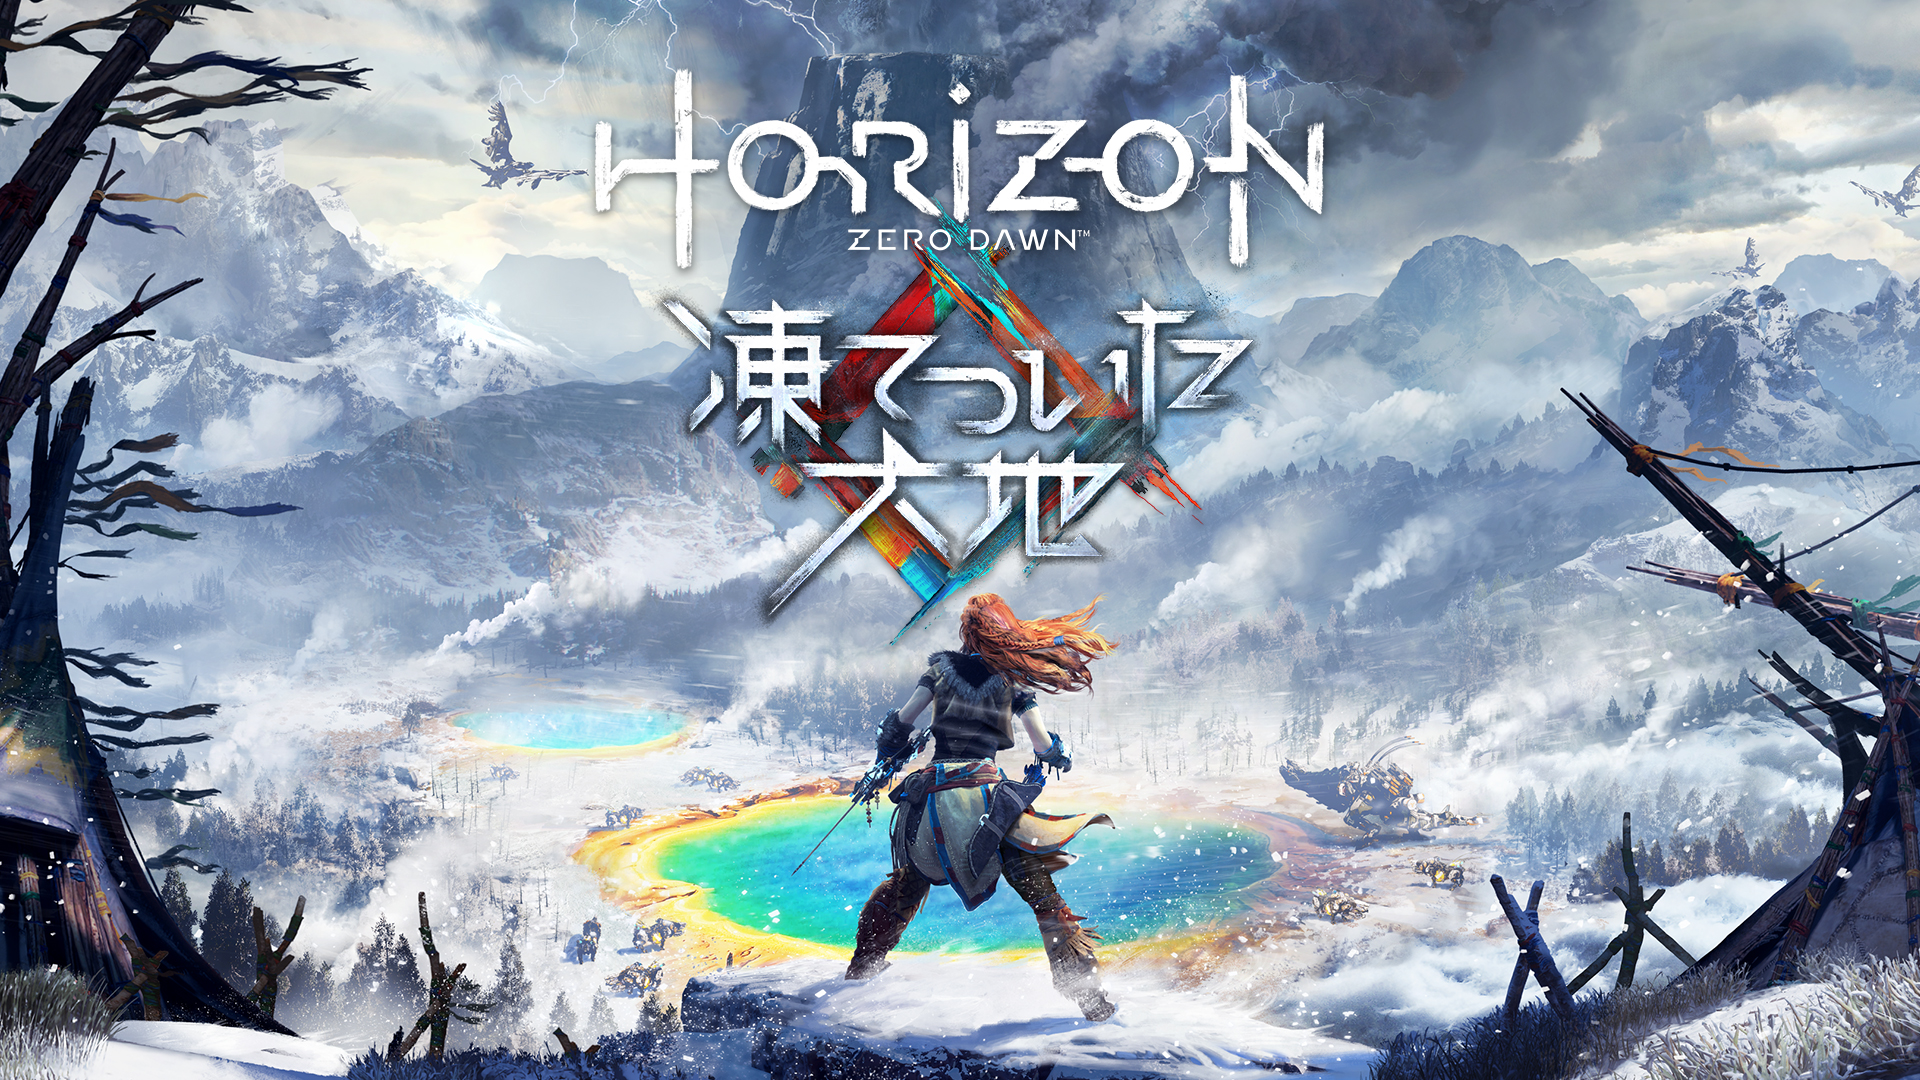 http://sce.scene7.com/is/image/playstation/dam-horizonzerodawn-dlc-the-frozen-wilds-mainvisual-sp?$originalSize_PNG$